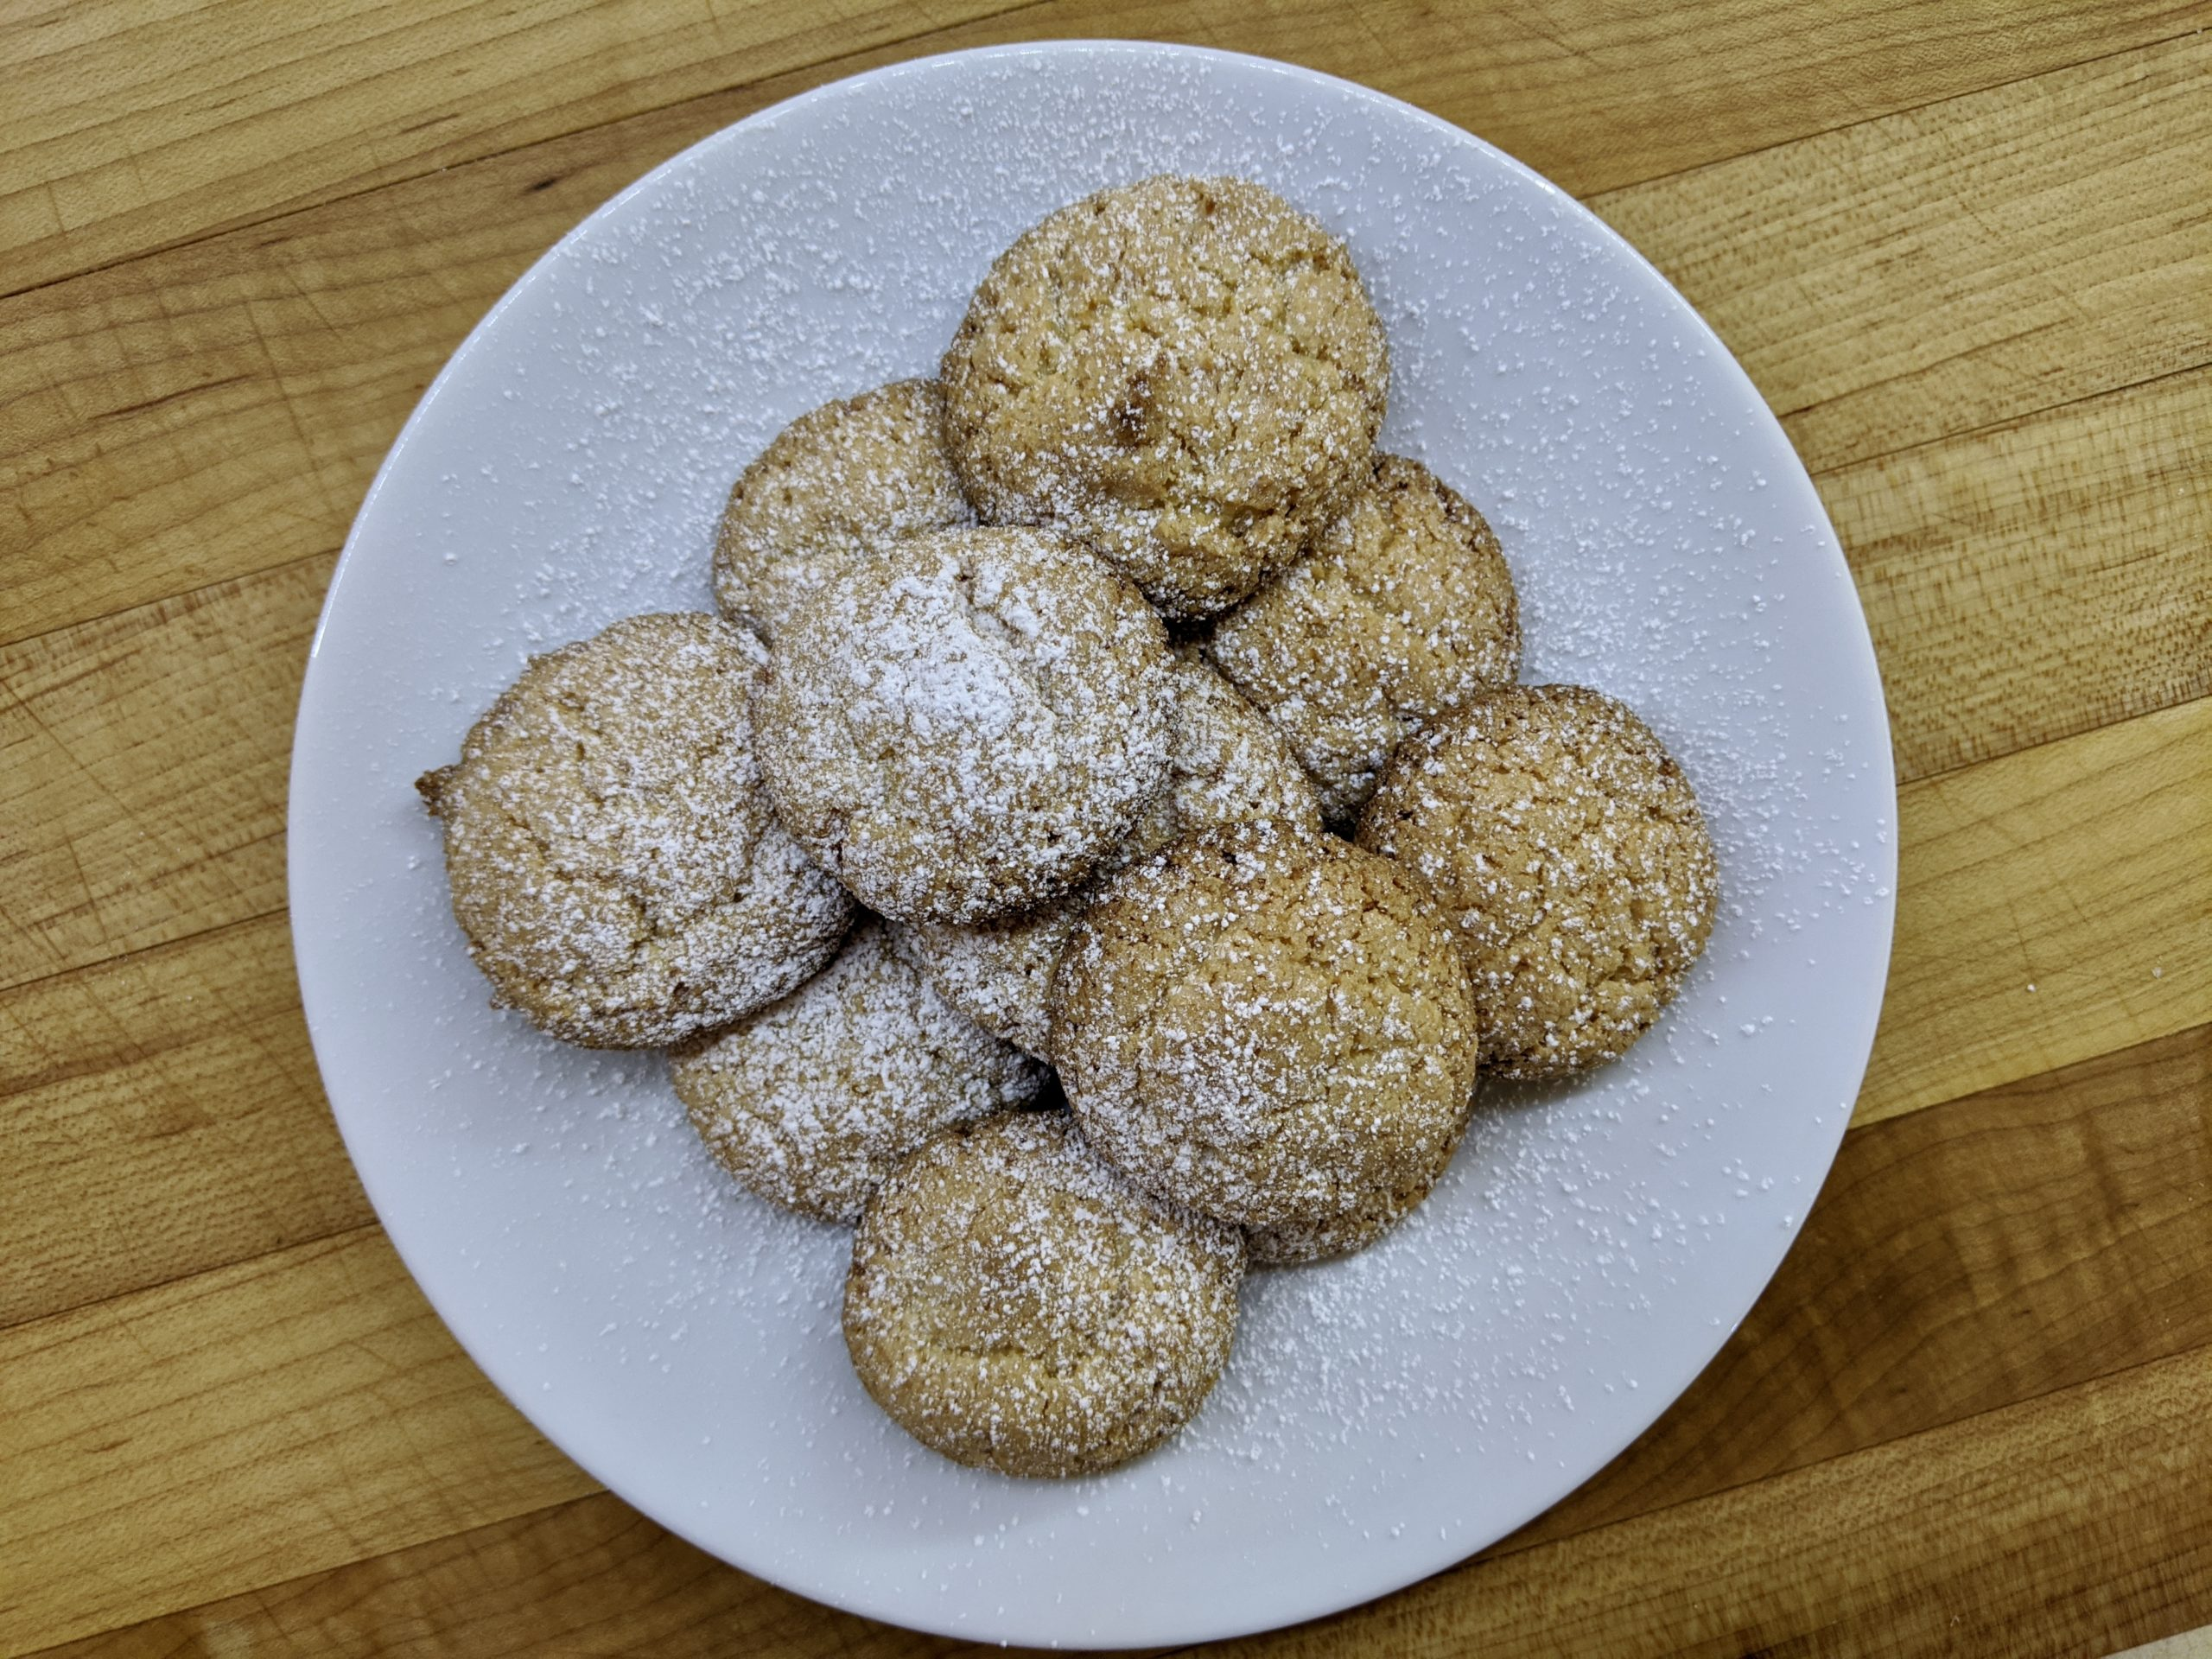 Meal 81 - Maronchinos - Almond Cookies